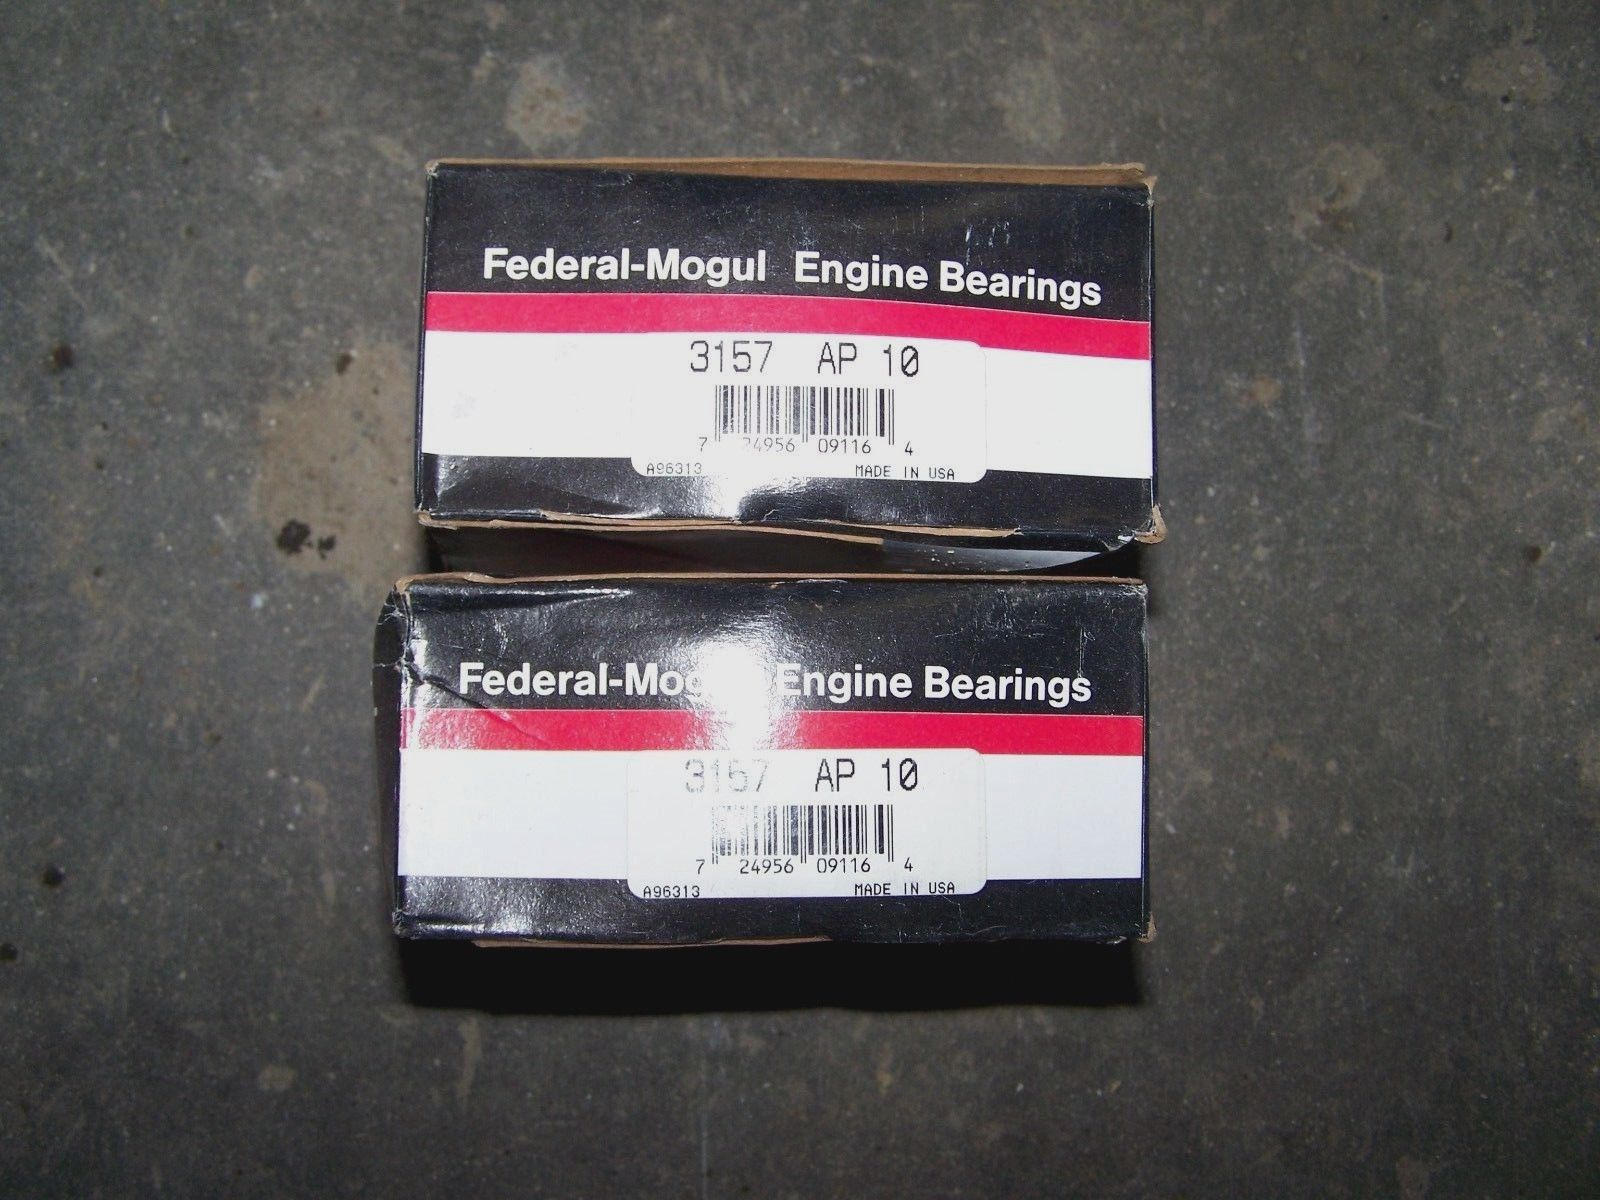 FEDERAL MOGUL Engine Bearings 3157 AP 10 3157AP10 2 Boxes